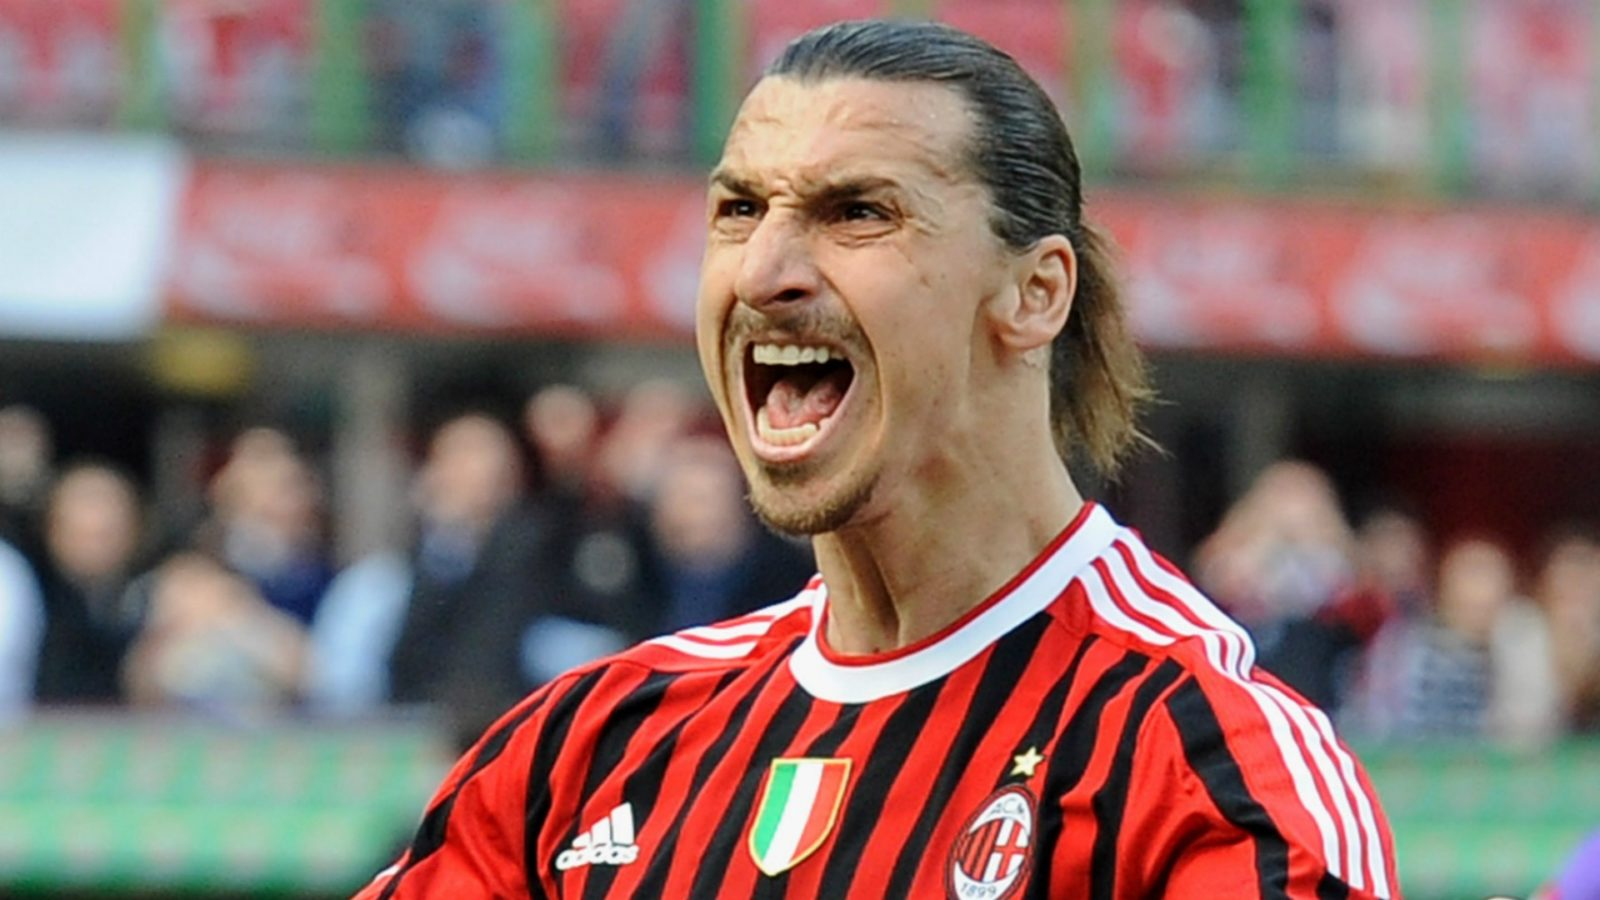 ibrahimovic:-i-didn't-come-to-milan-as-a-mascot-to-dance-on-the-sidelines